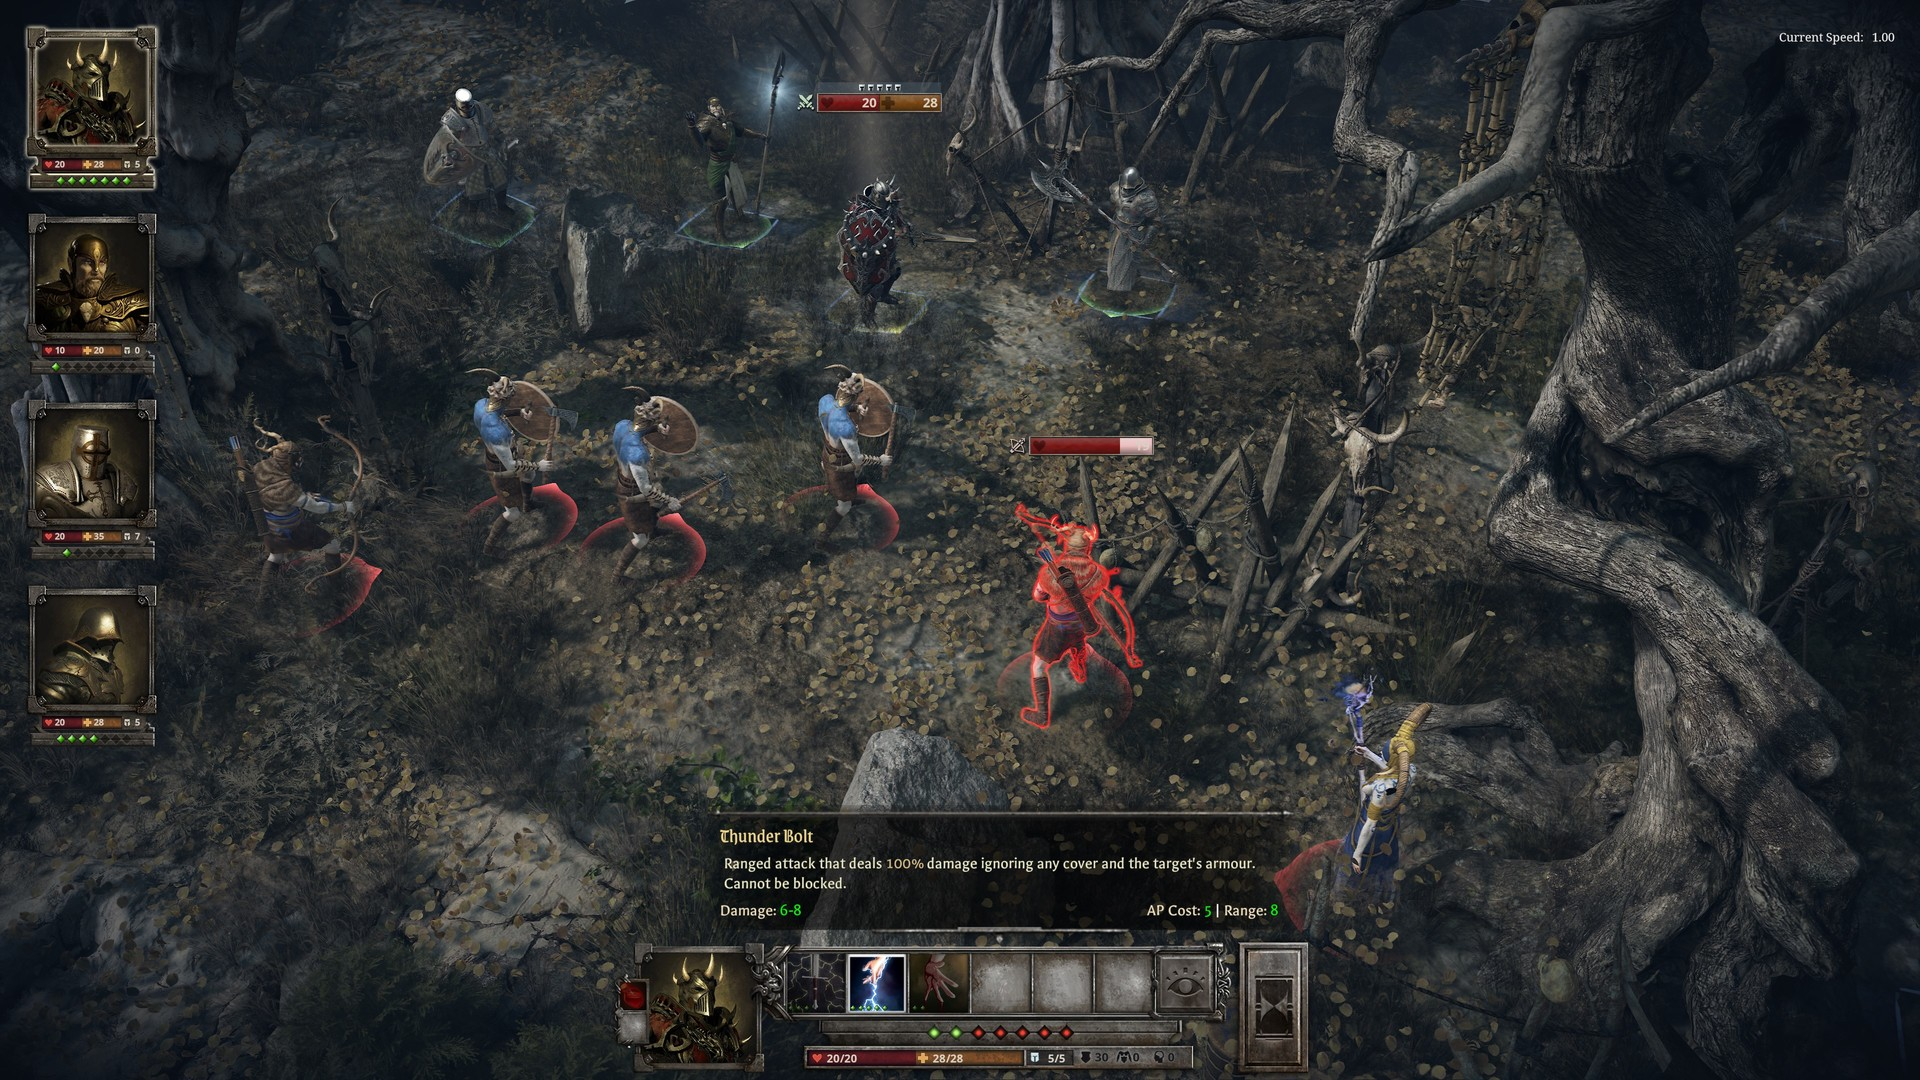 King Arthur: Knight's Tale Release Date- Turn-Based Strategy Game